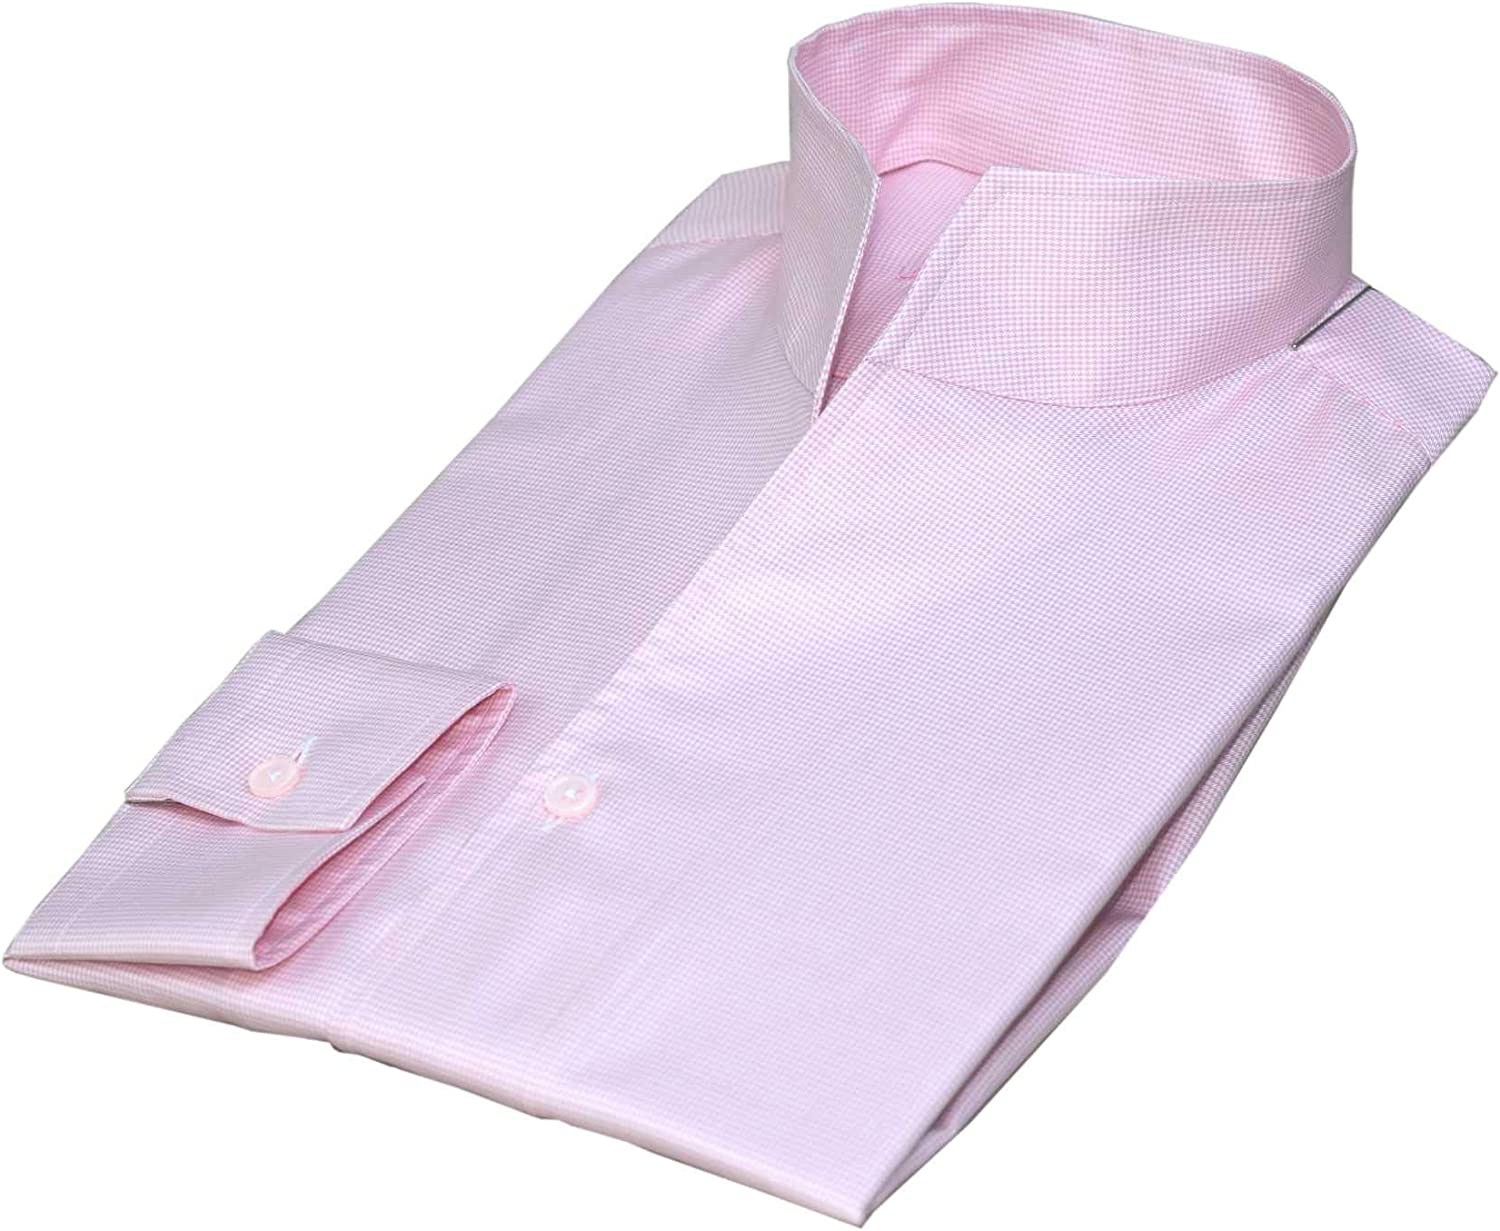 Mens high Open Ranking TOP7 Animer and price revision Collar Shirt Pink V 100% New Cotton Button no